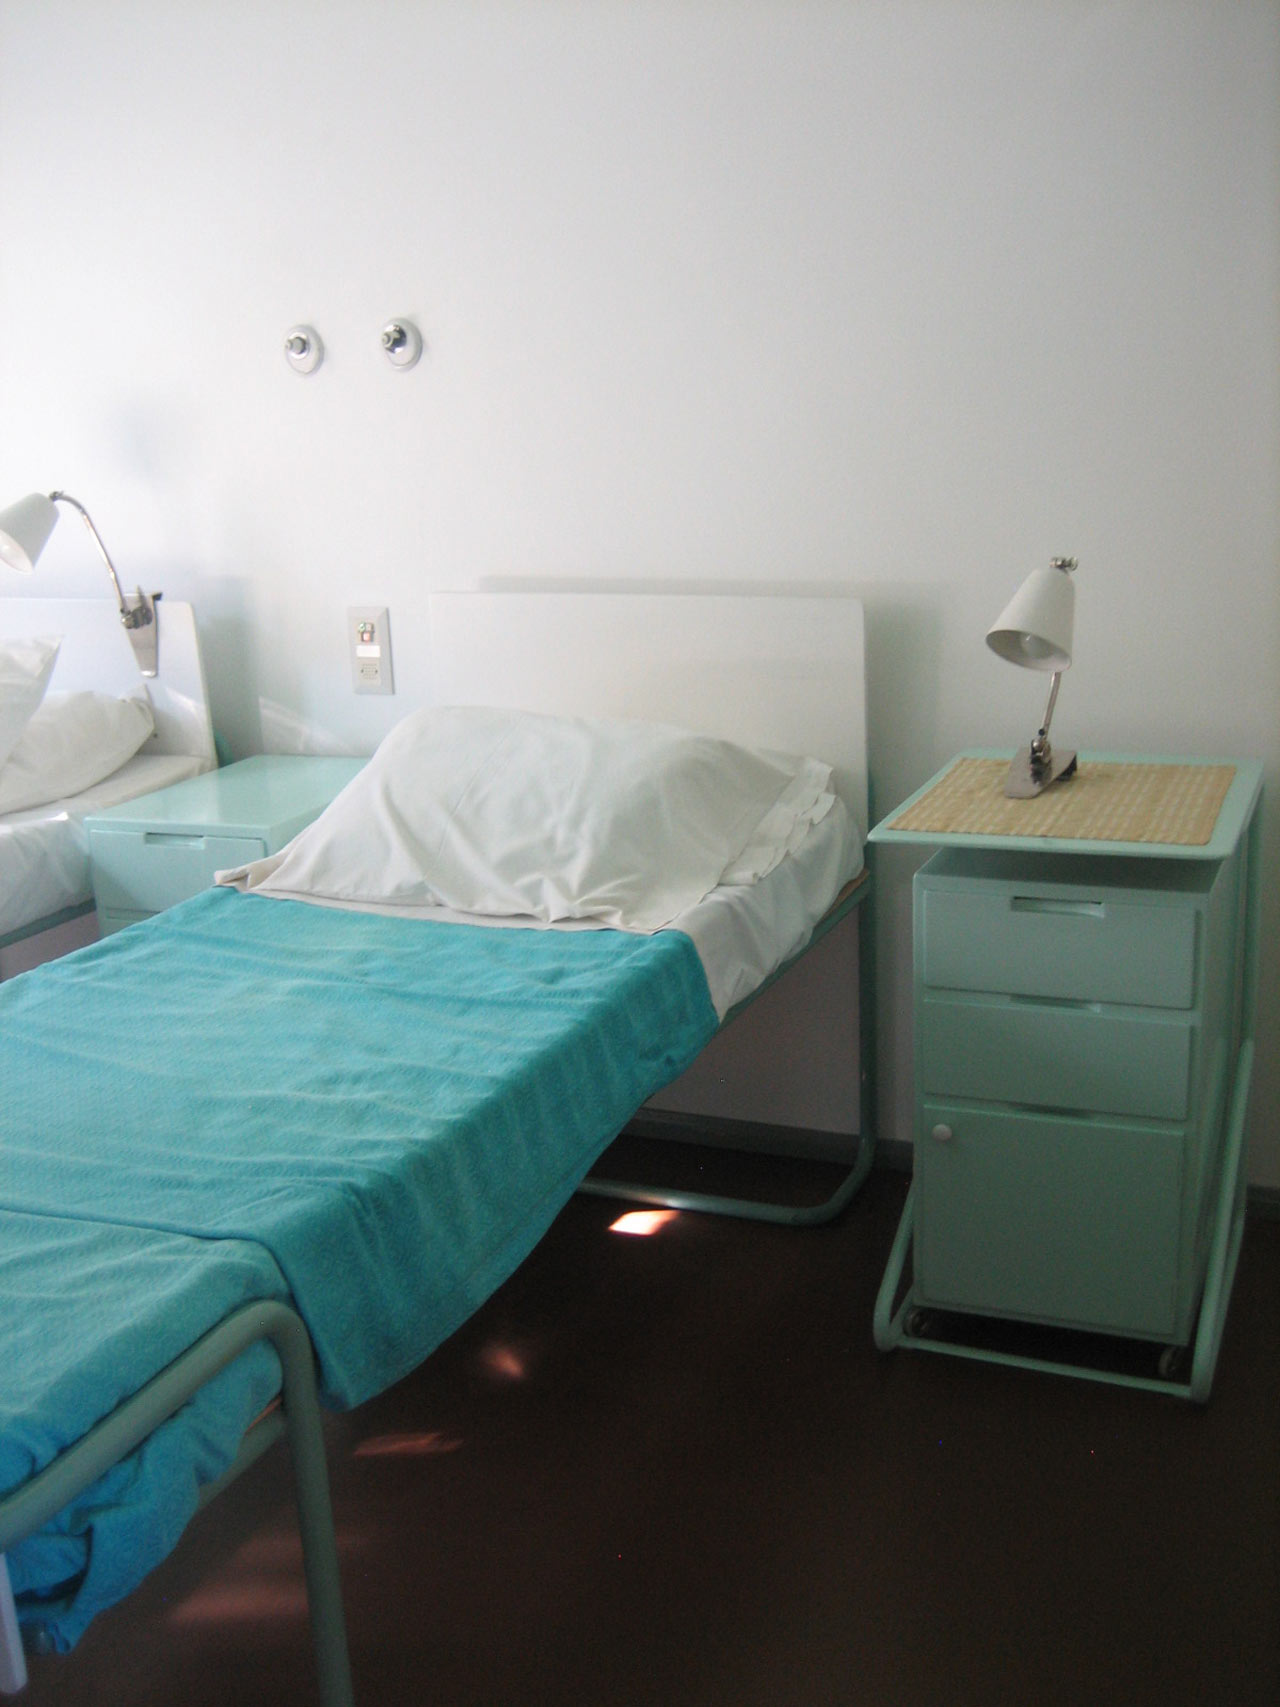 Paimio Sanatorium interior, photo courtesy of Beth Dickstein